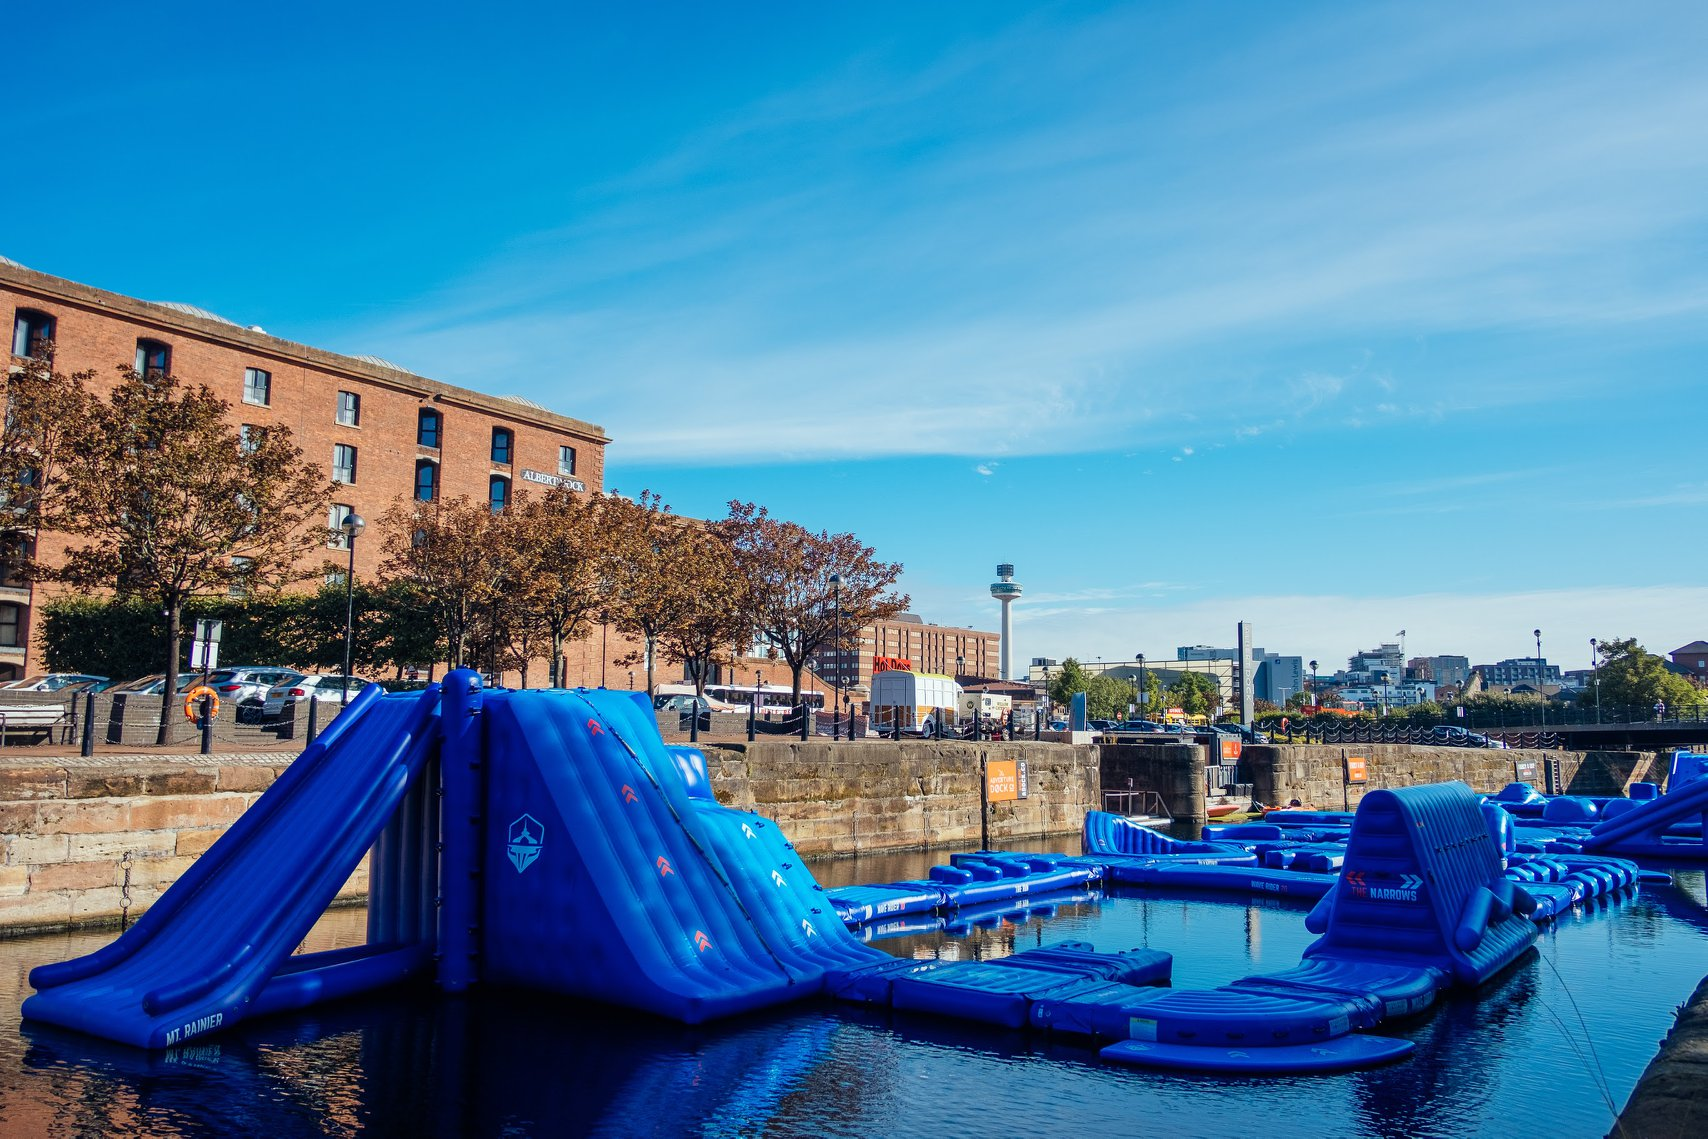 blue-inflatable-obstacle-course-on-river-by-city-street-date-ideas-liverpool